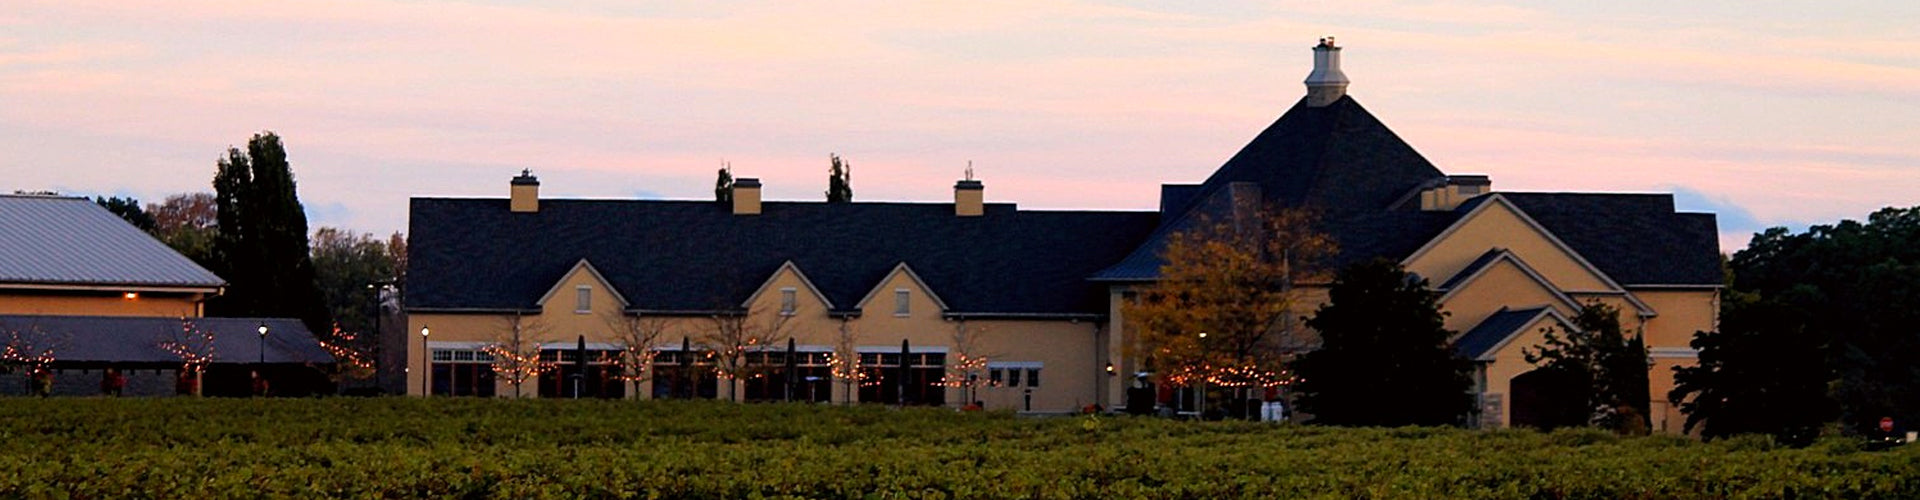 Peller Family Estates Winery Ontario